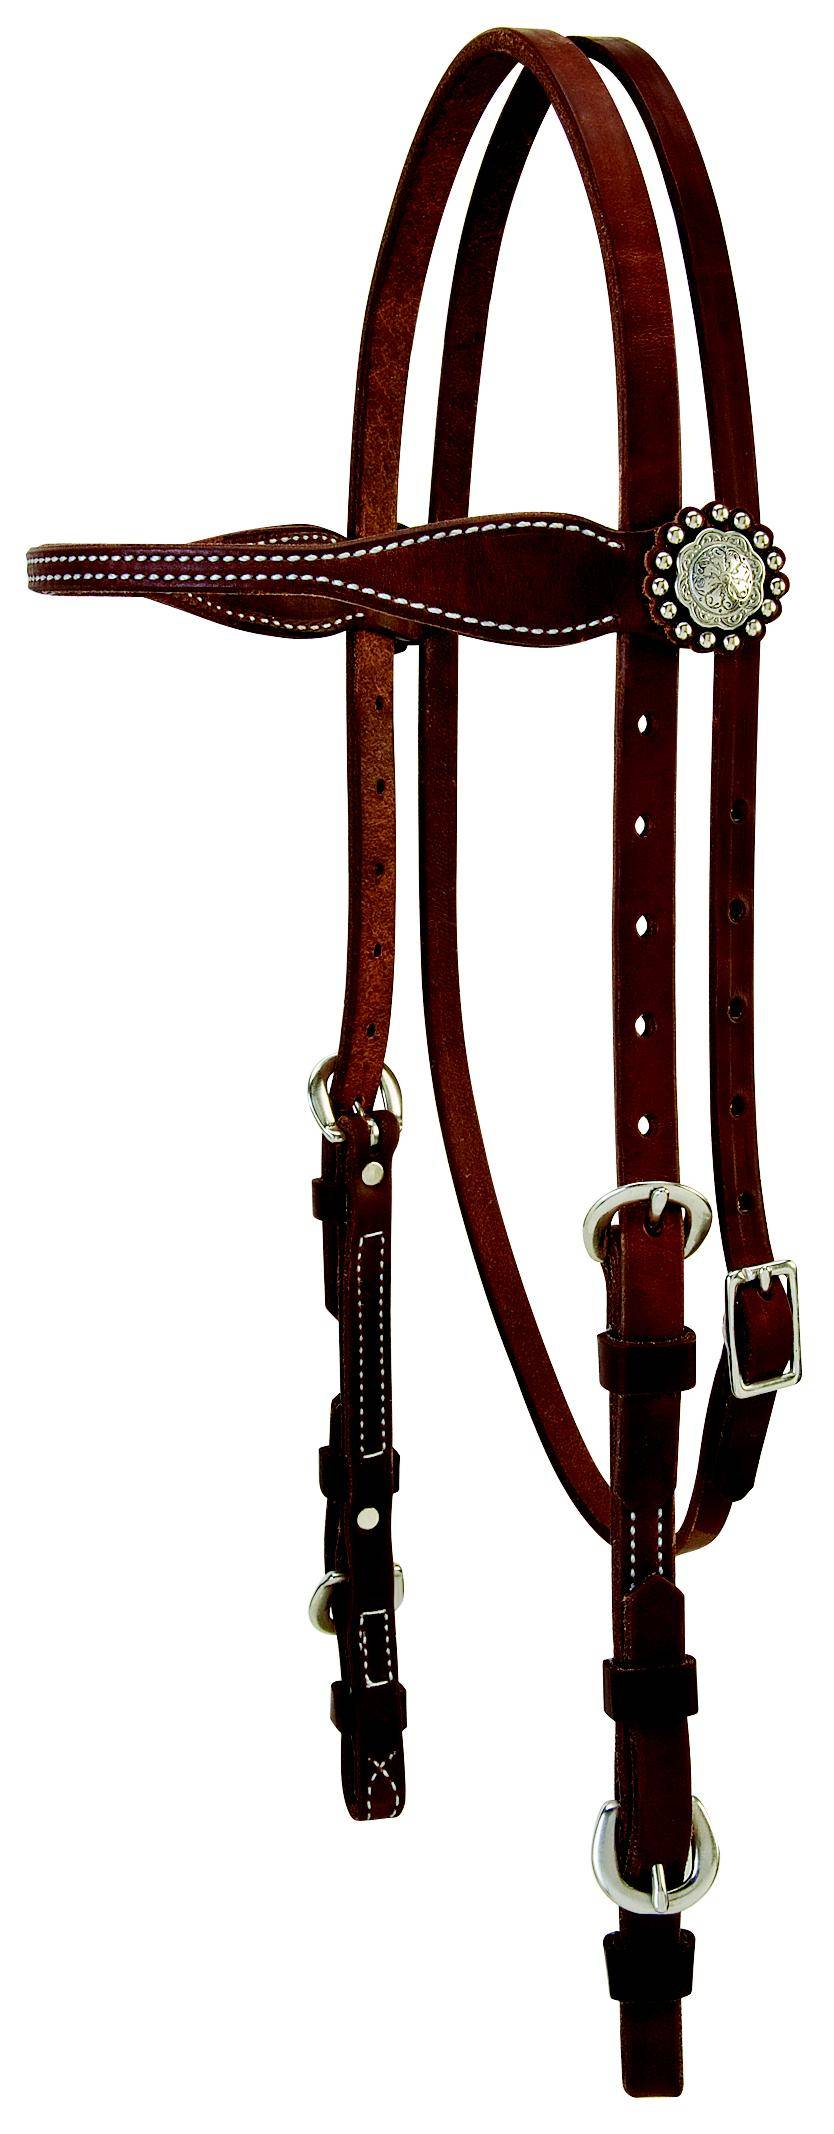 Weaver Leather Protack Oiled Browband Headstall